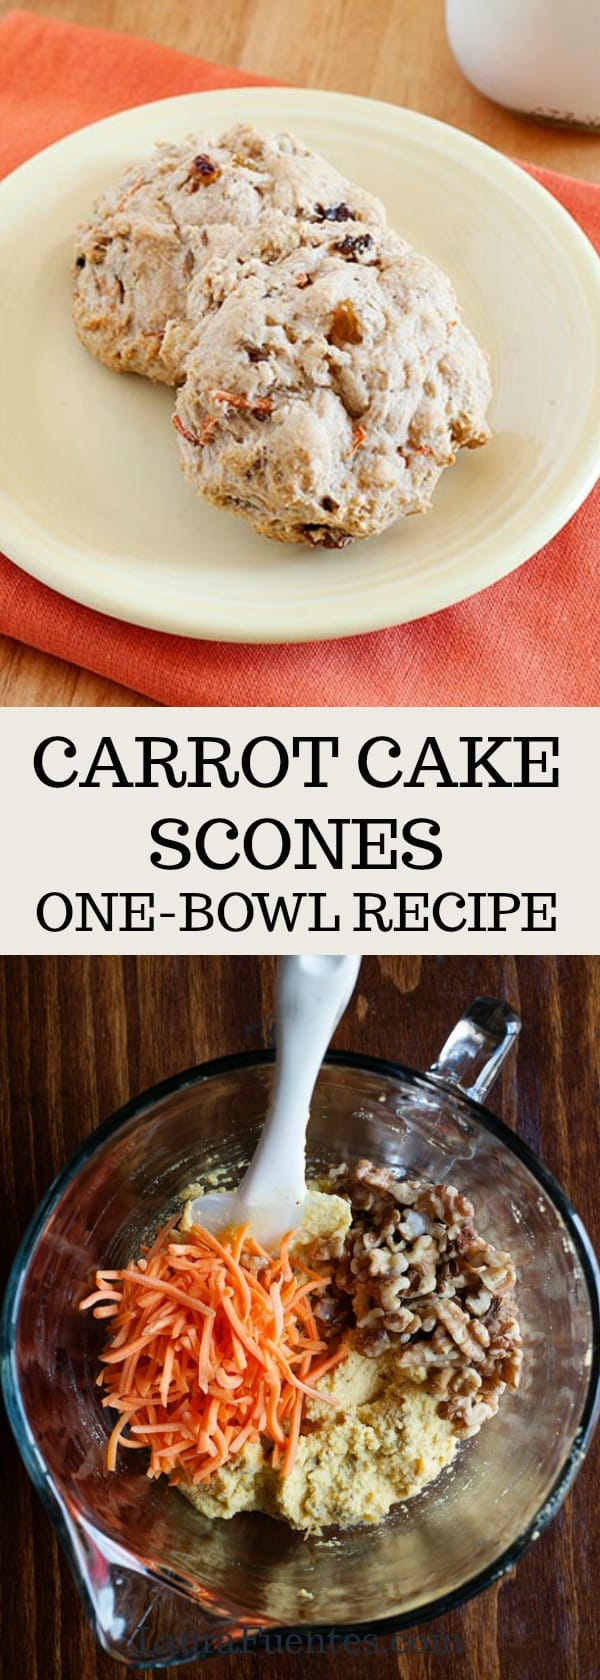 Sign me up for an easy carrot cake scone recipe.